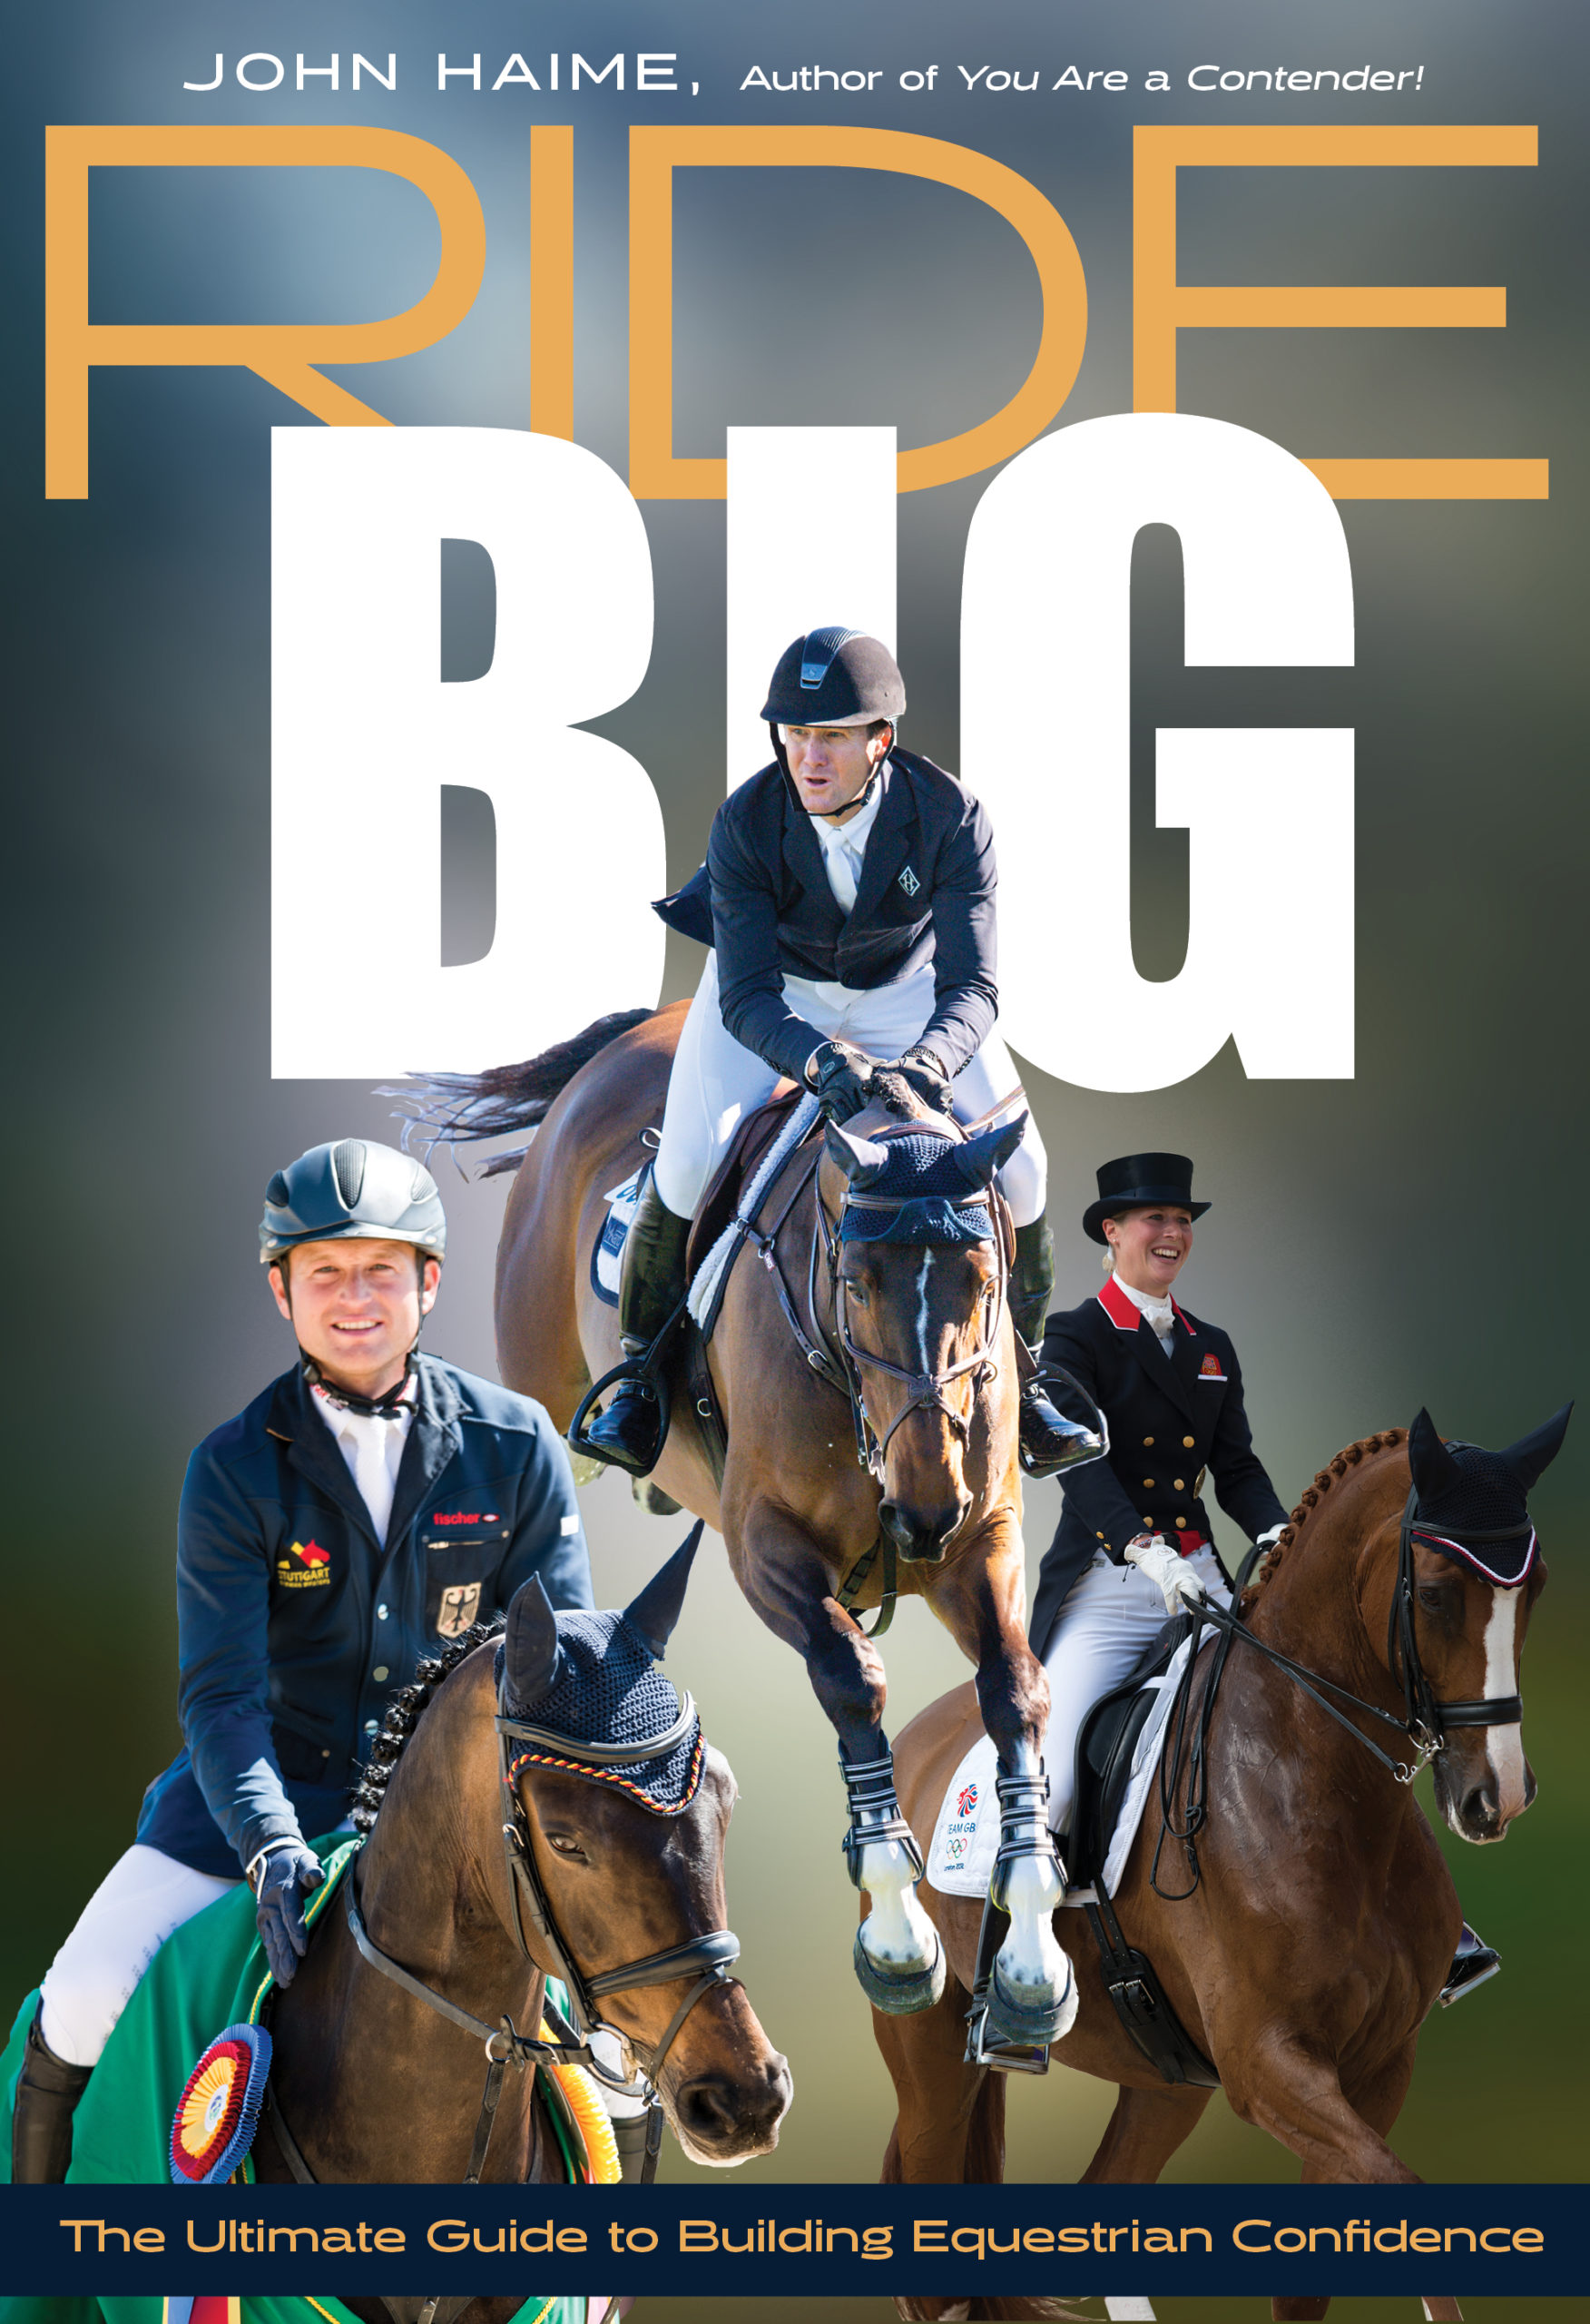 New Book on Rider Confidence 'Ride Big' Launches in UK Today